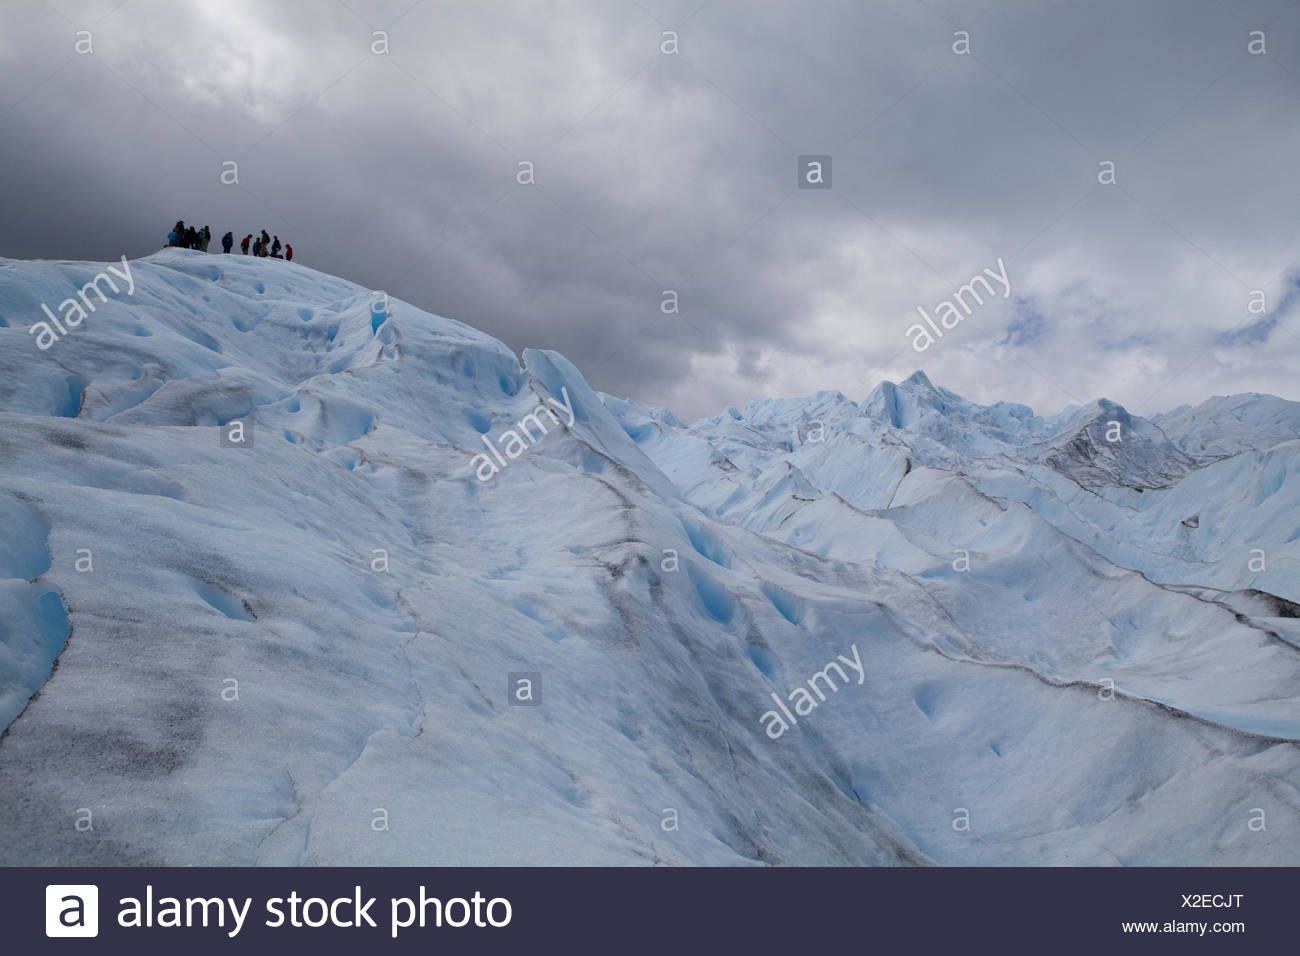 On top of the Perito Moreno Glacier: a group of persons show the dimensions of the landscape. - Stock Image